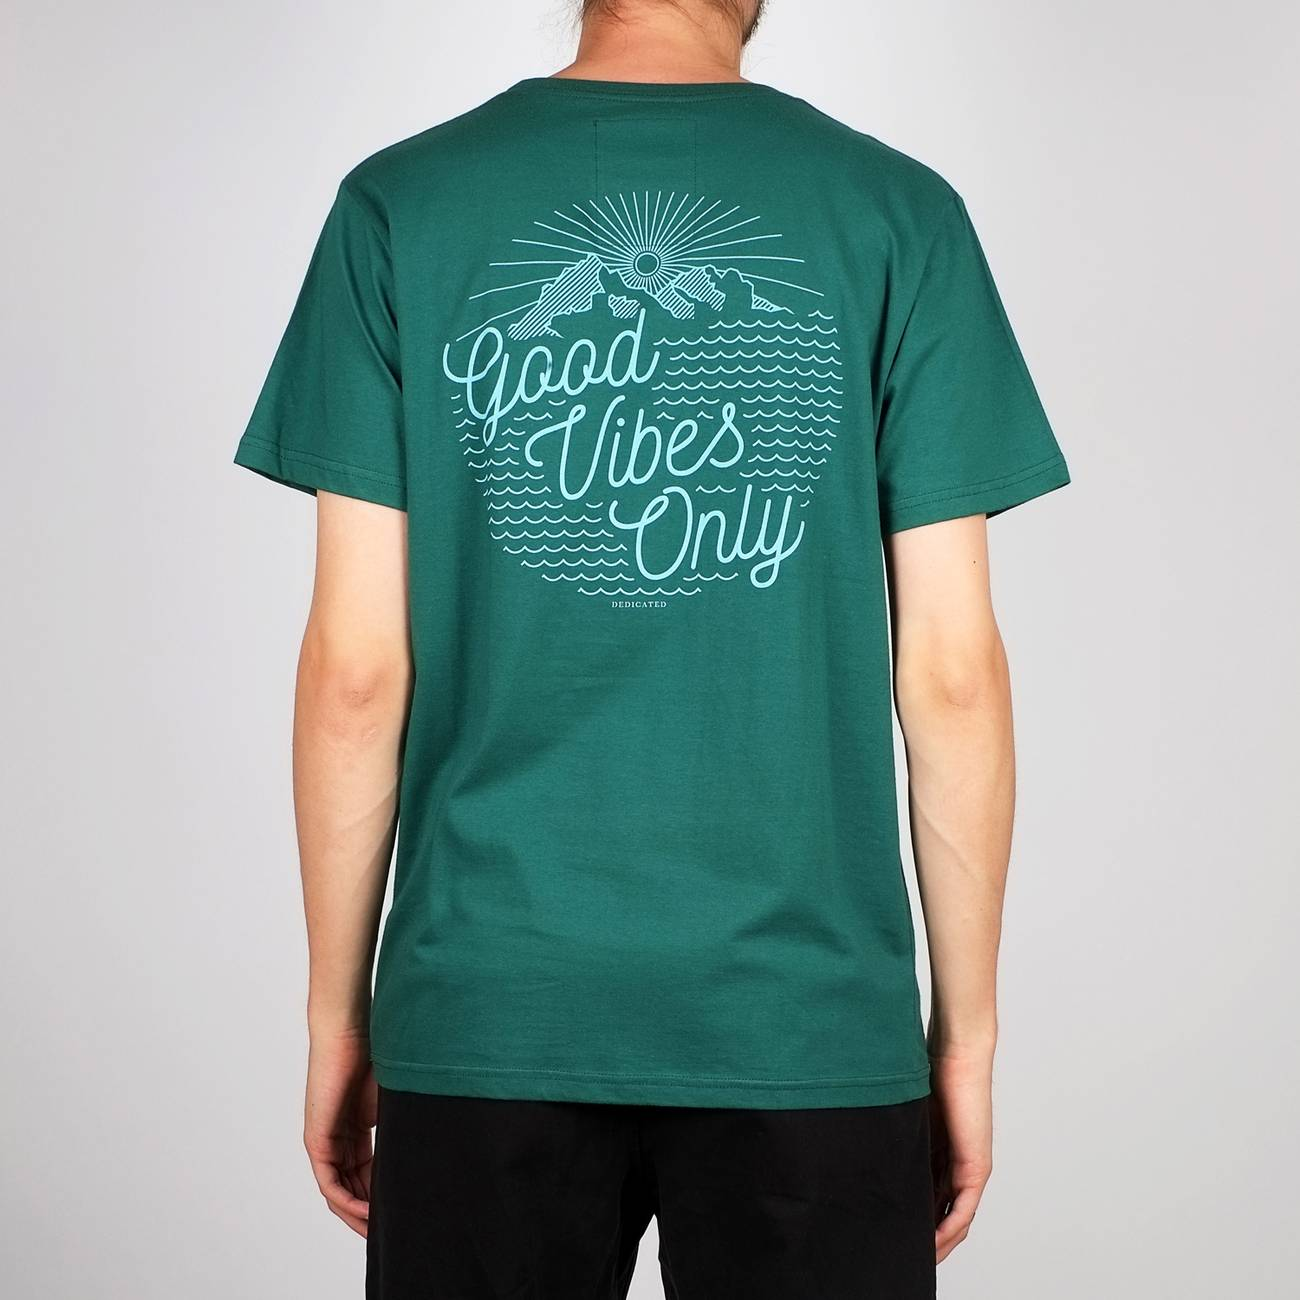 Outdoor Vibes T-Shirt